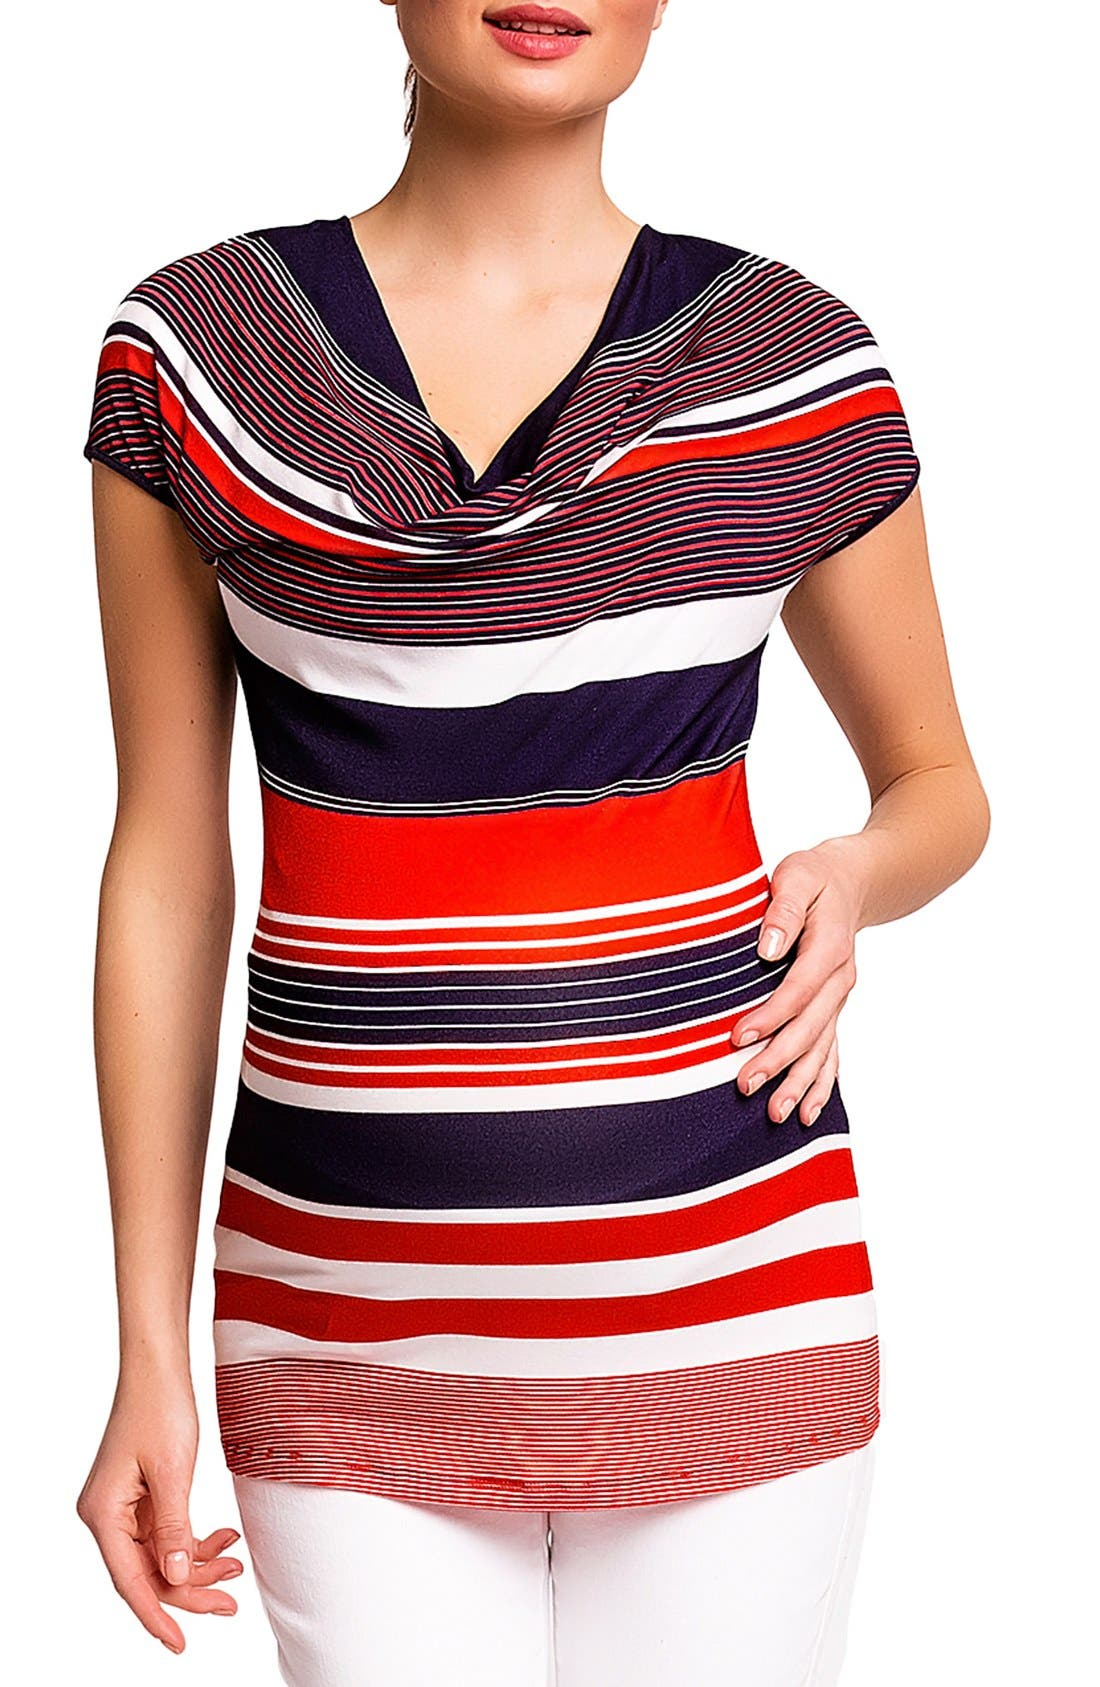 'Ginestra' Maternity/Nursing Tunic,                             Main thumbnail 1, color,                             RED/BLUE STRIPES